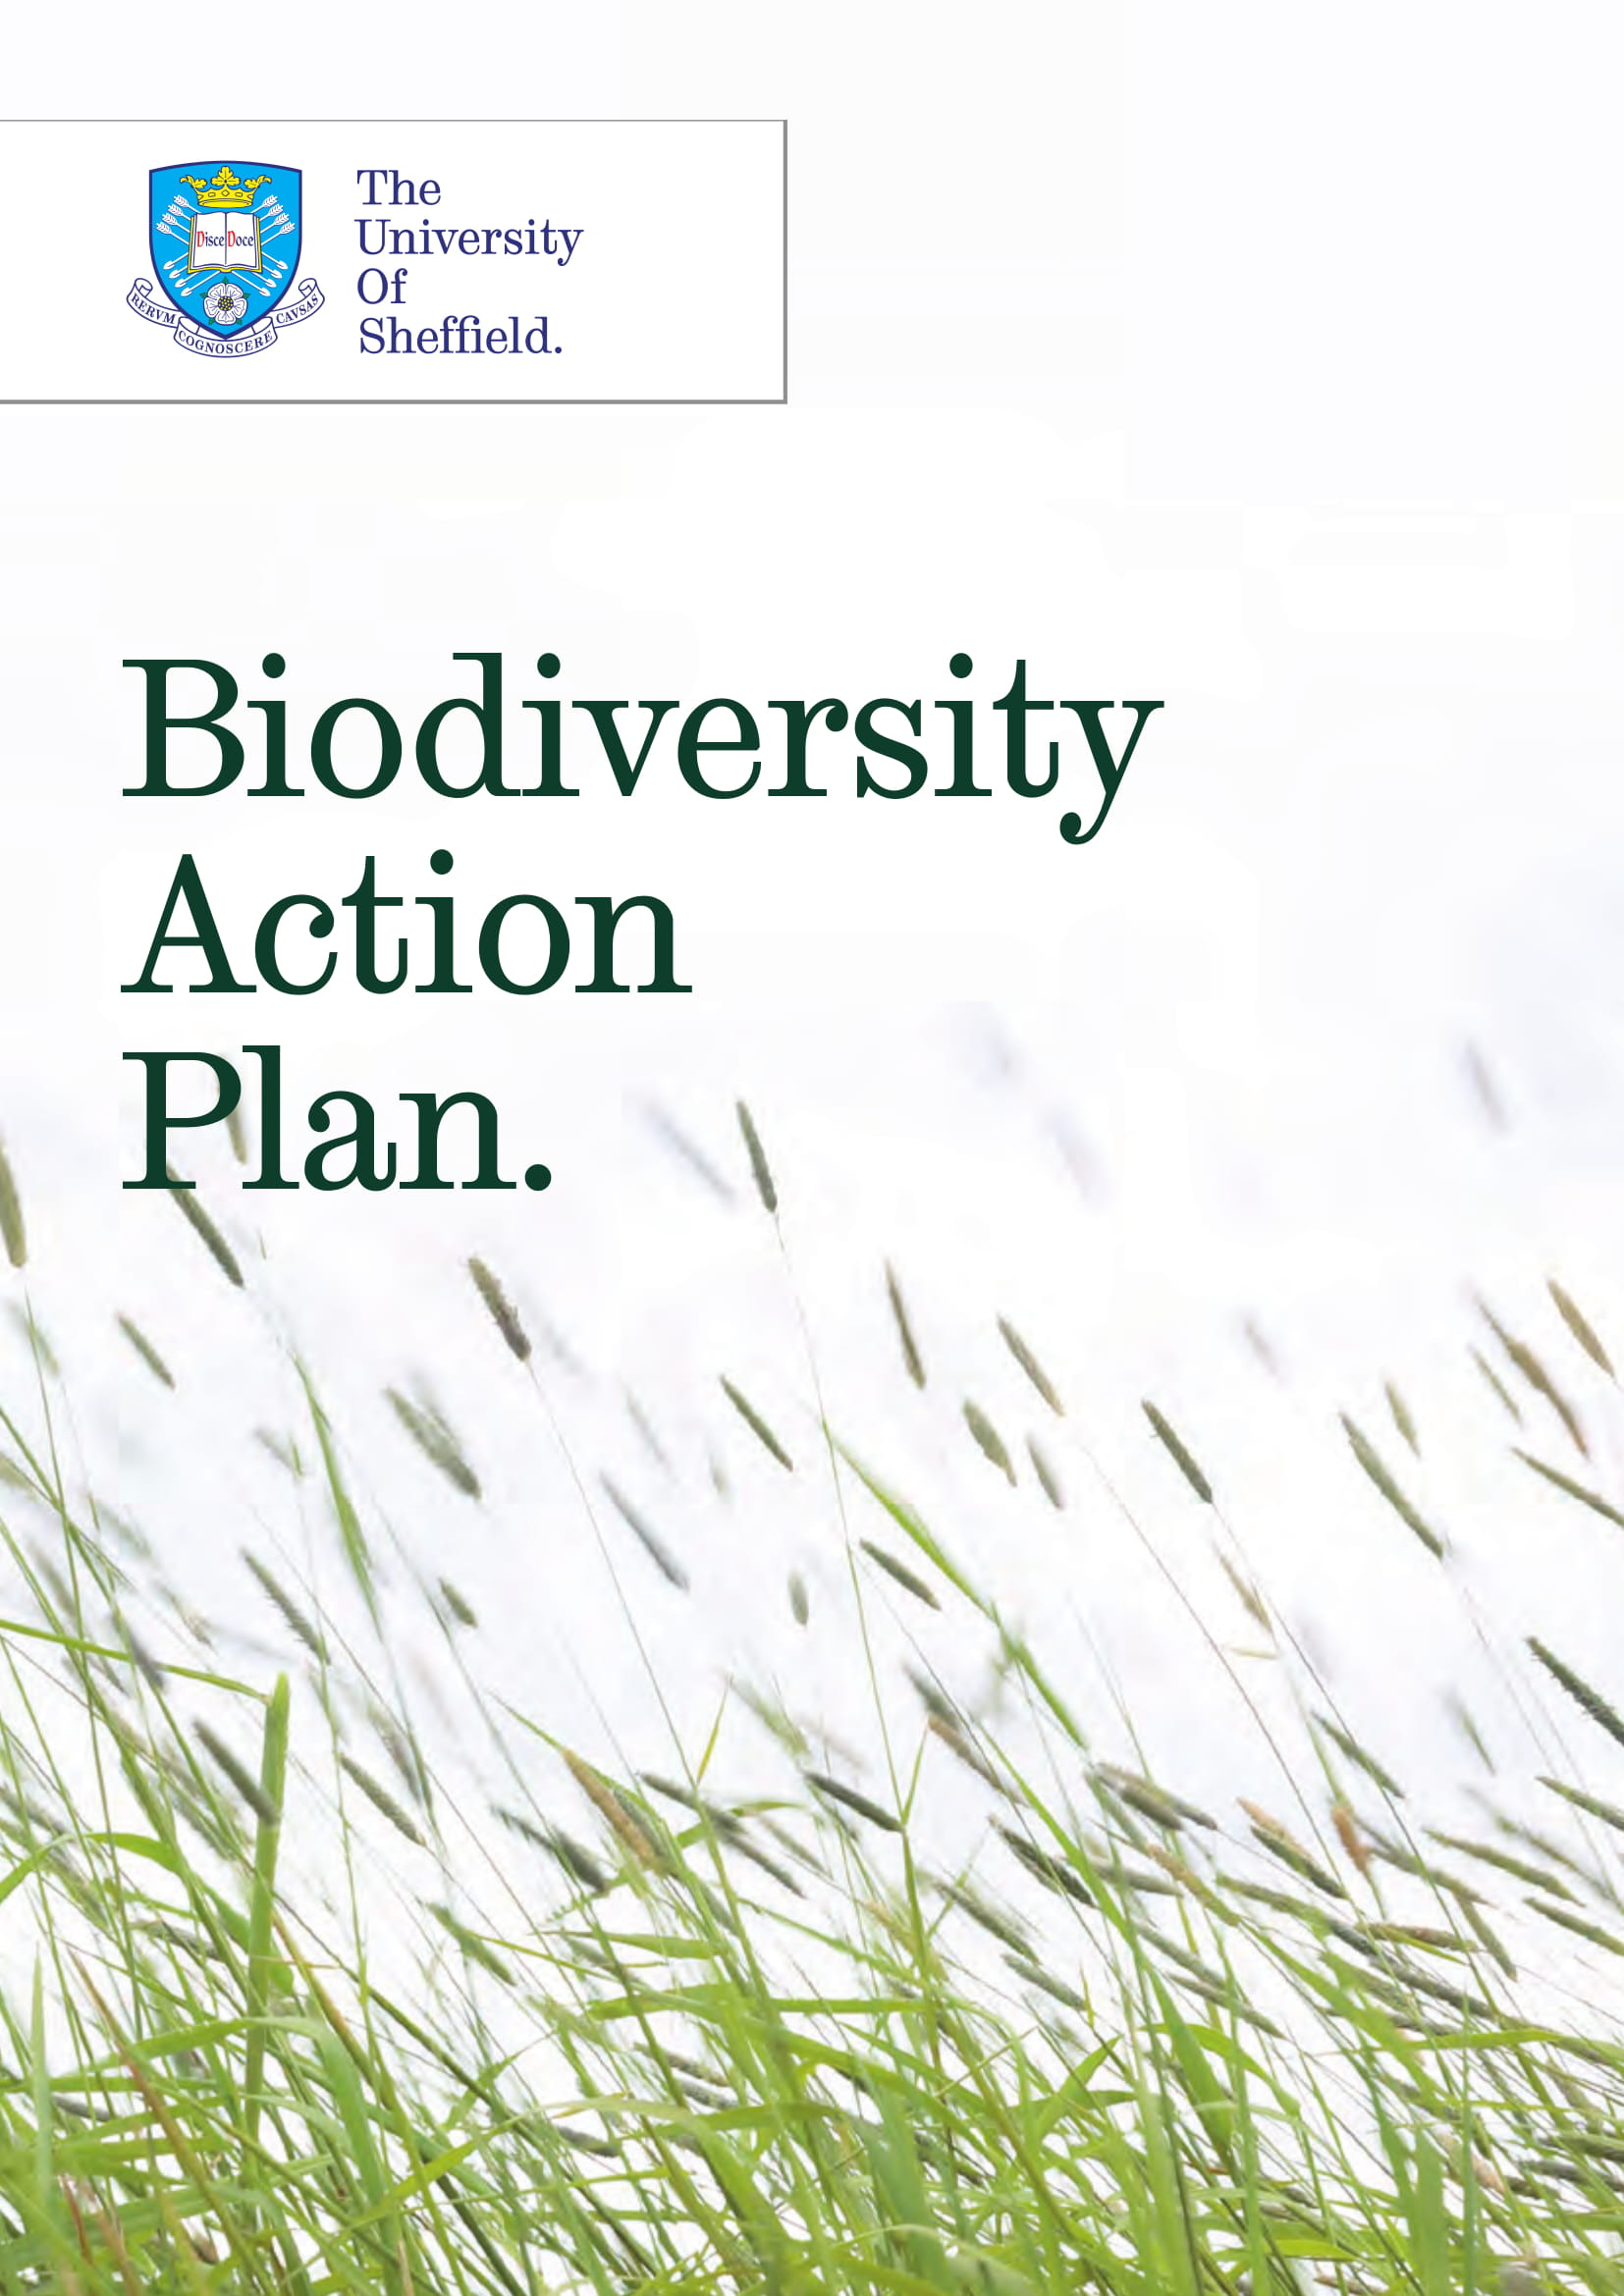 university biodiversity action plan example 01